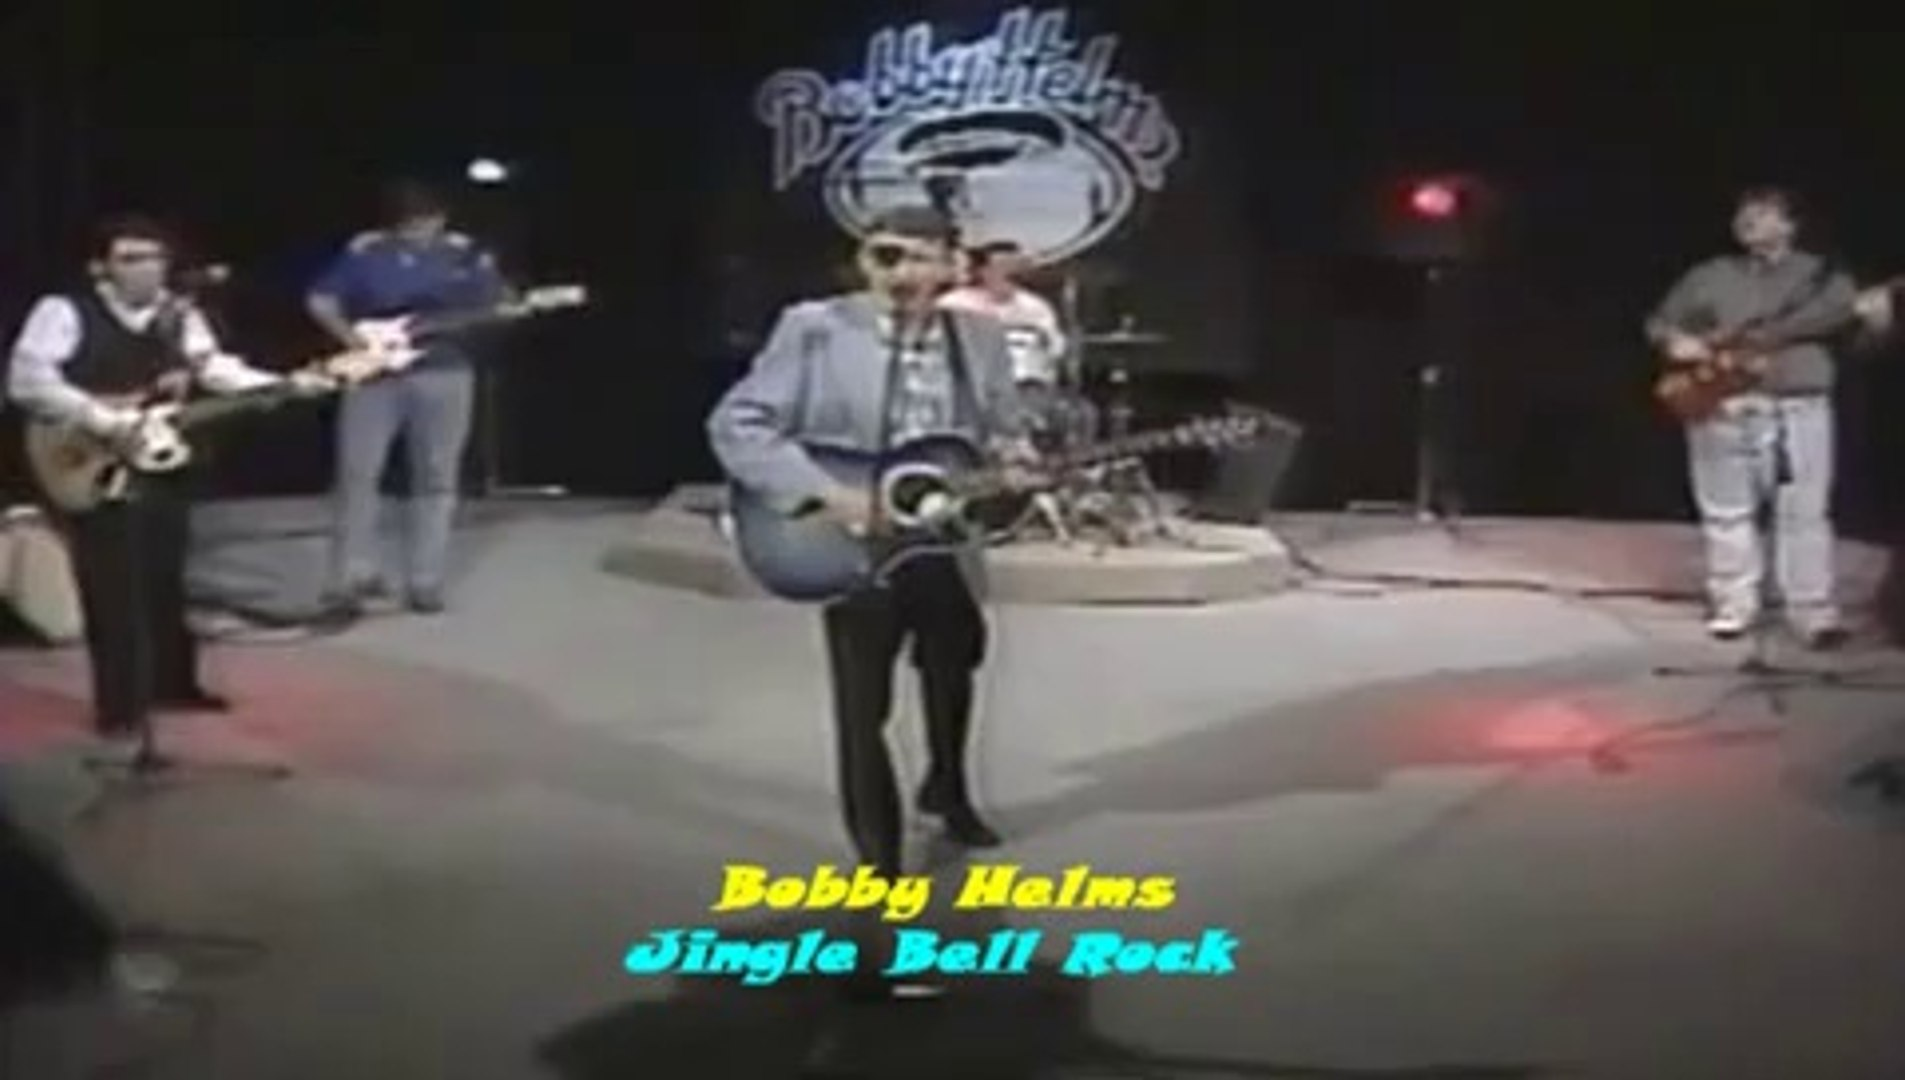 BOBBY HELMS JINGLE BELL ROCK VIDEO CLIP LIVE